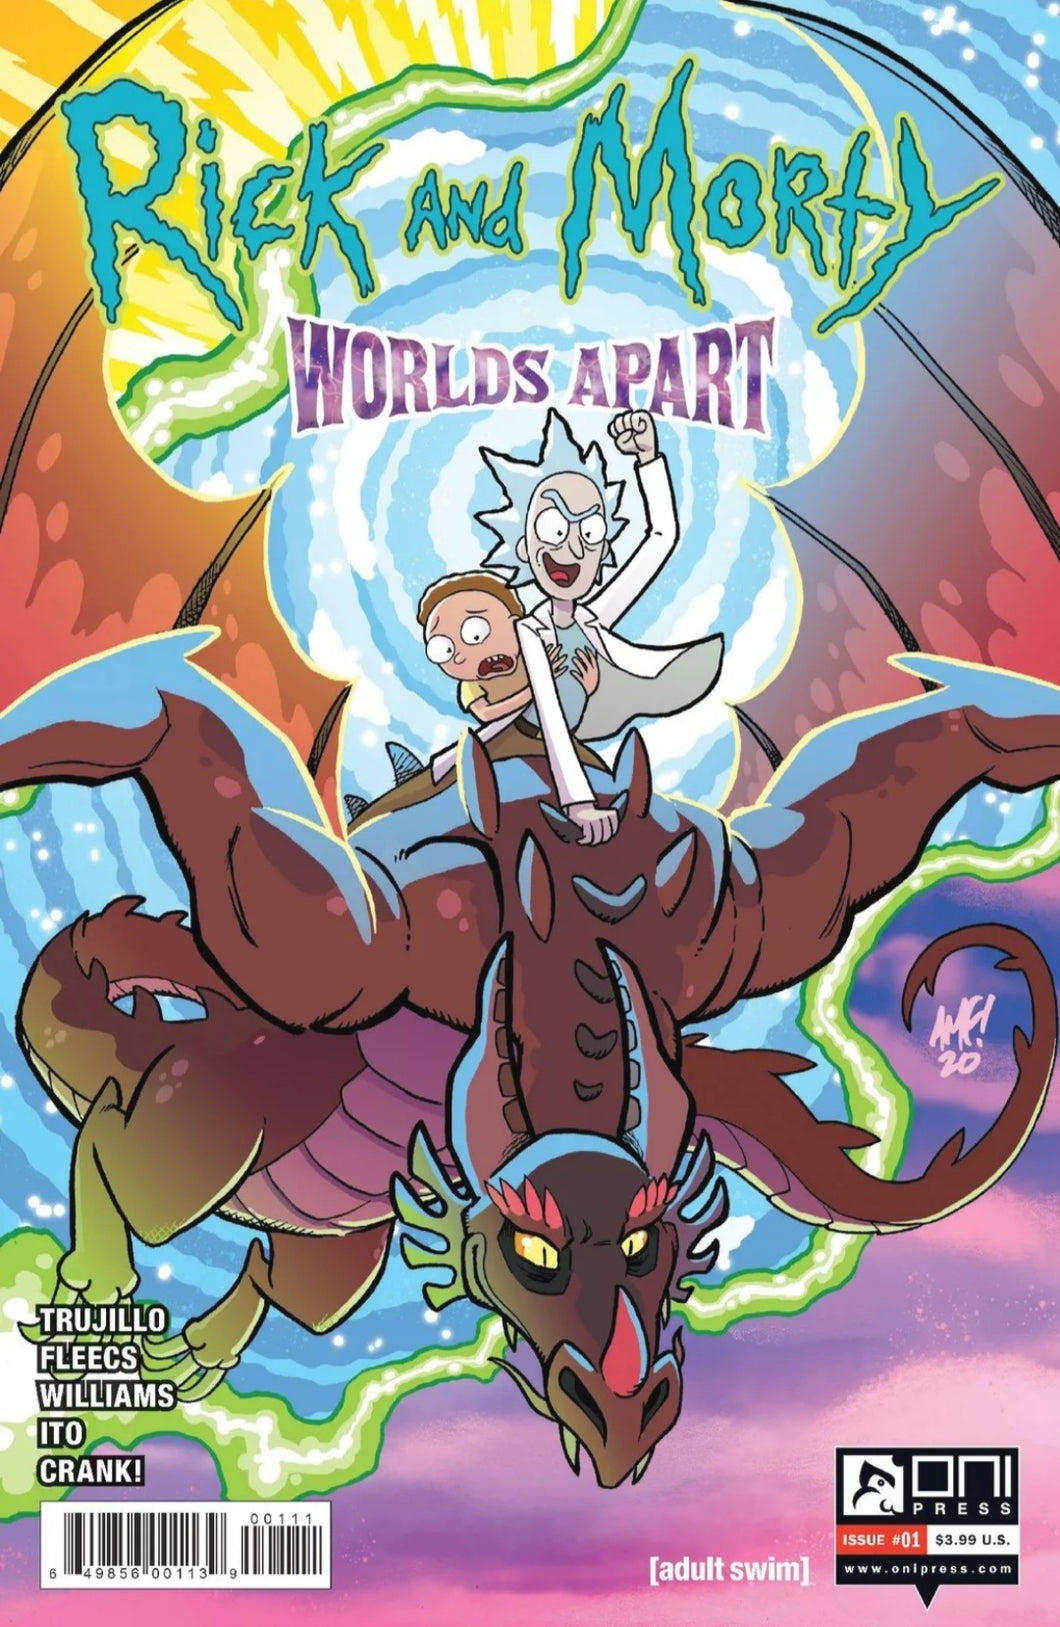 RICK AND MORTY WORLDS APART #1 CVR A FLEECS